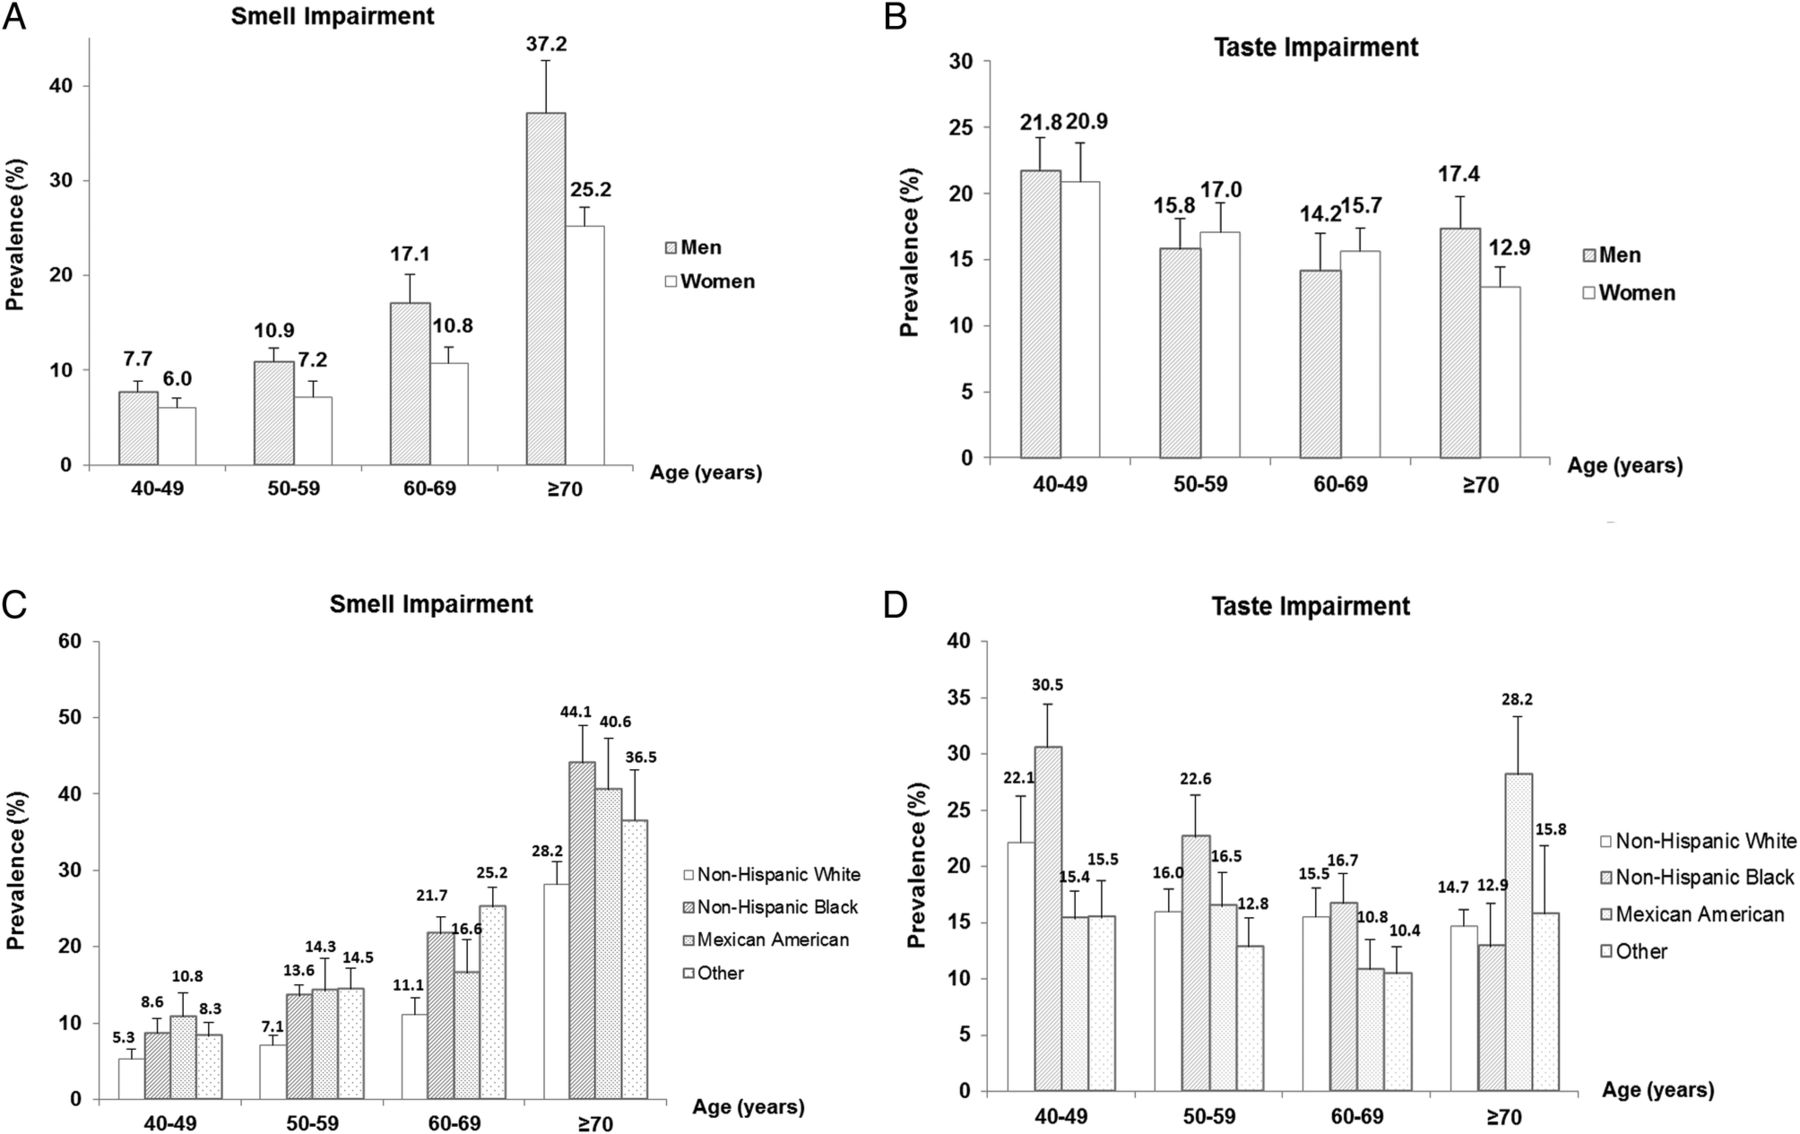 Prevalence and risk factors of taste and smell impairment